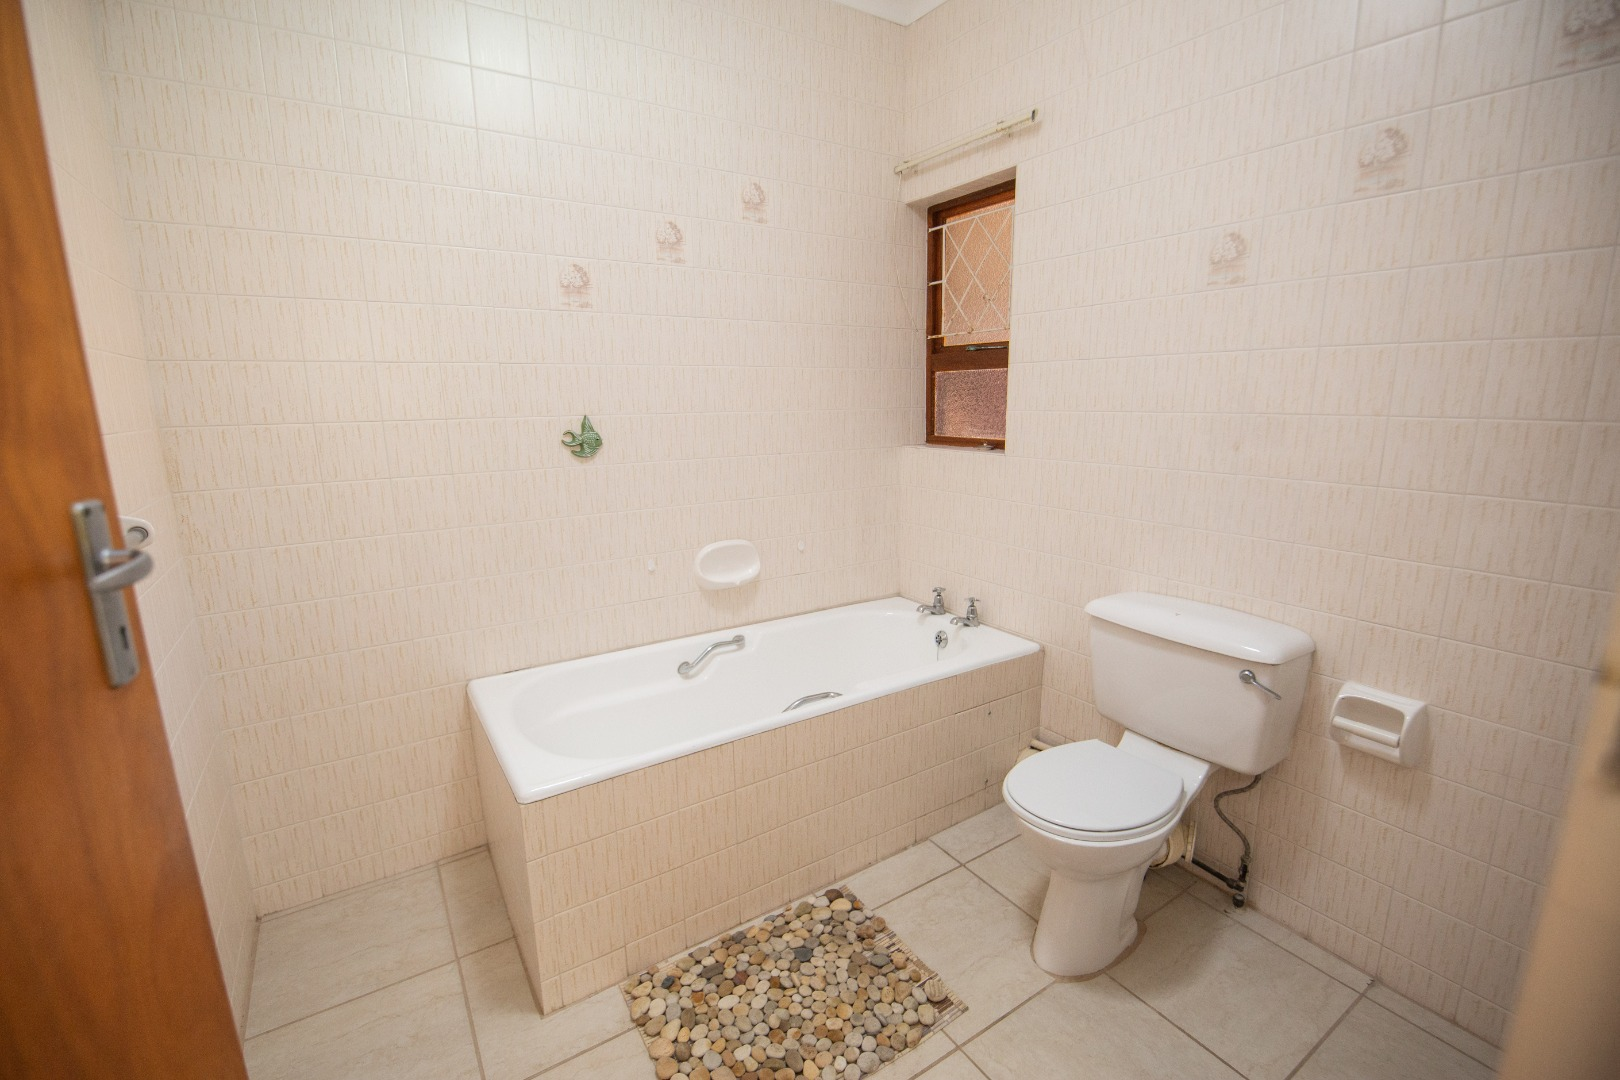 2 Bedroom Townhouse For Sale in Summerstrand